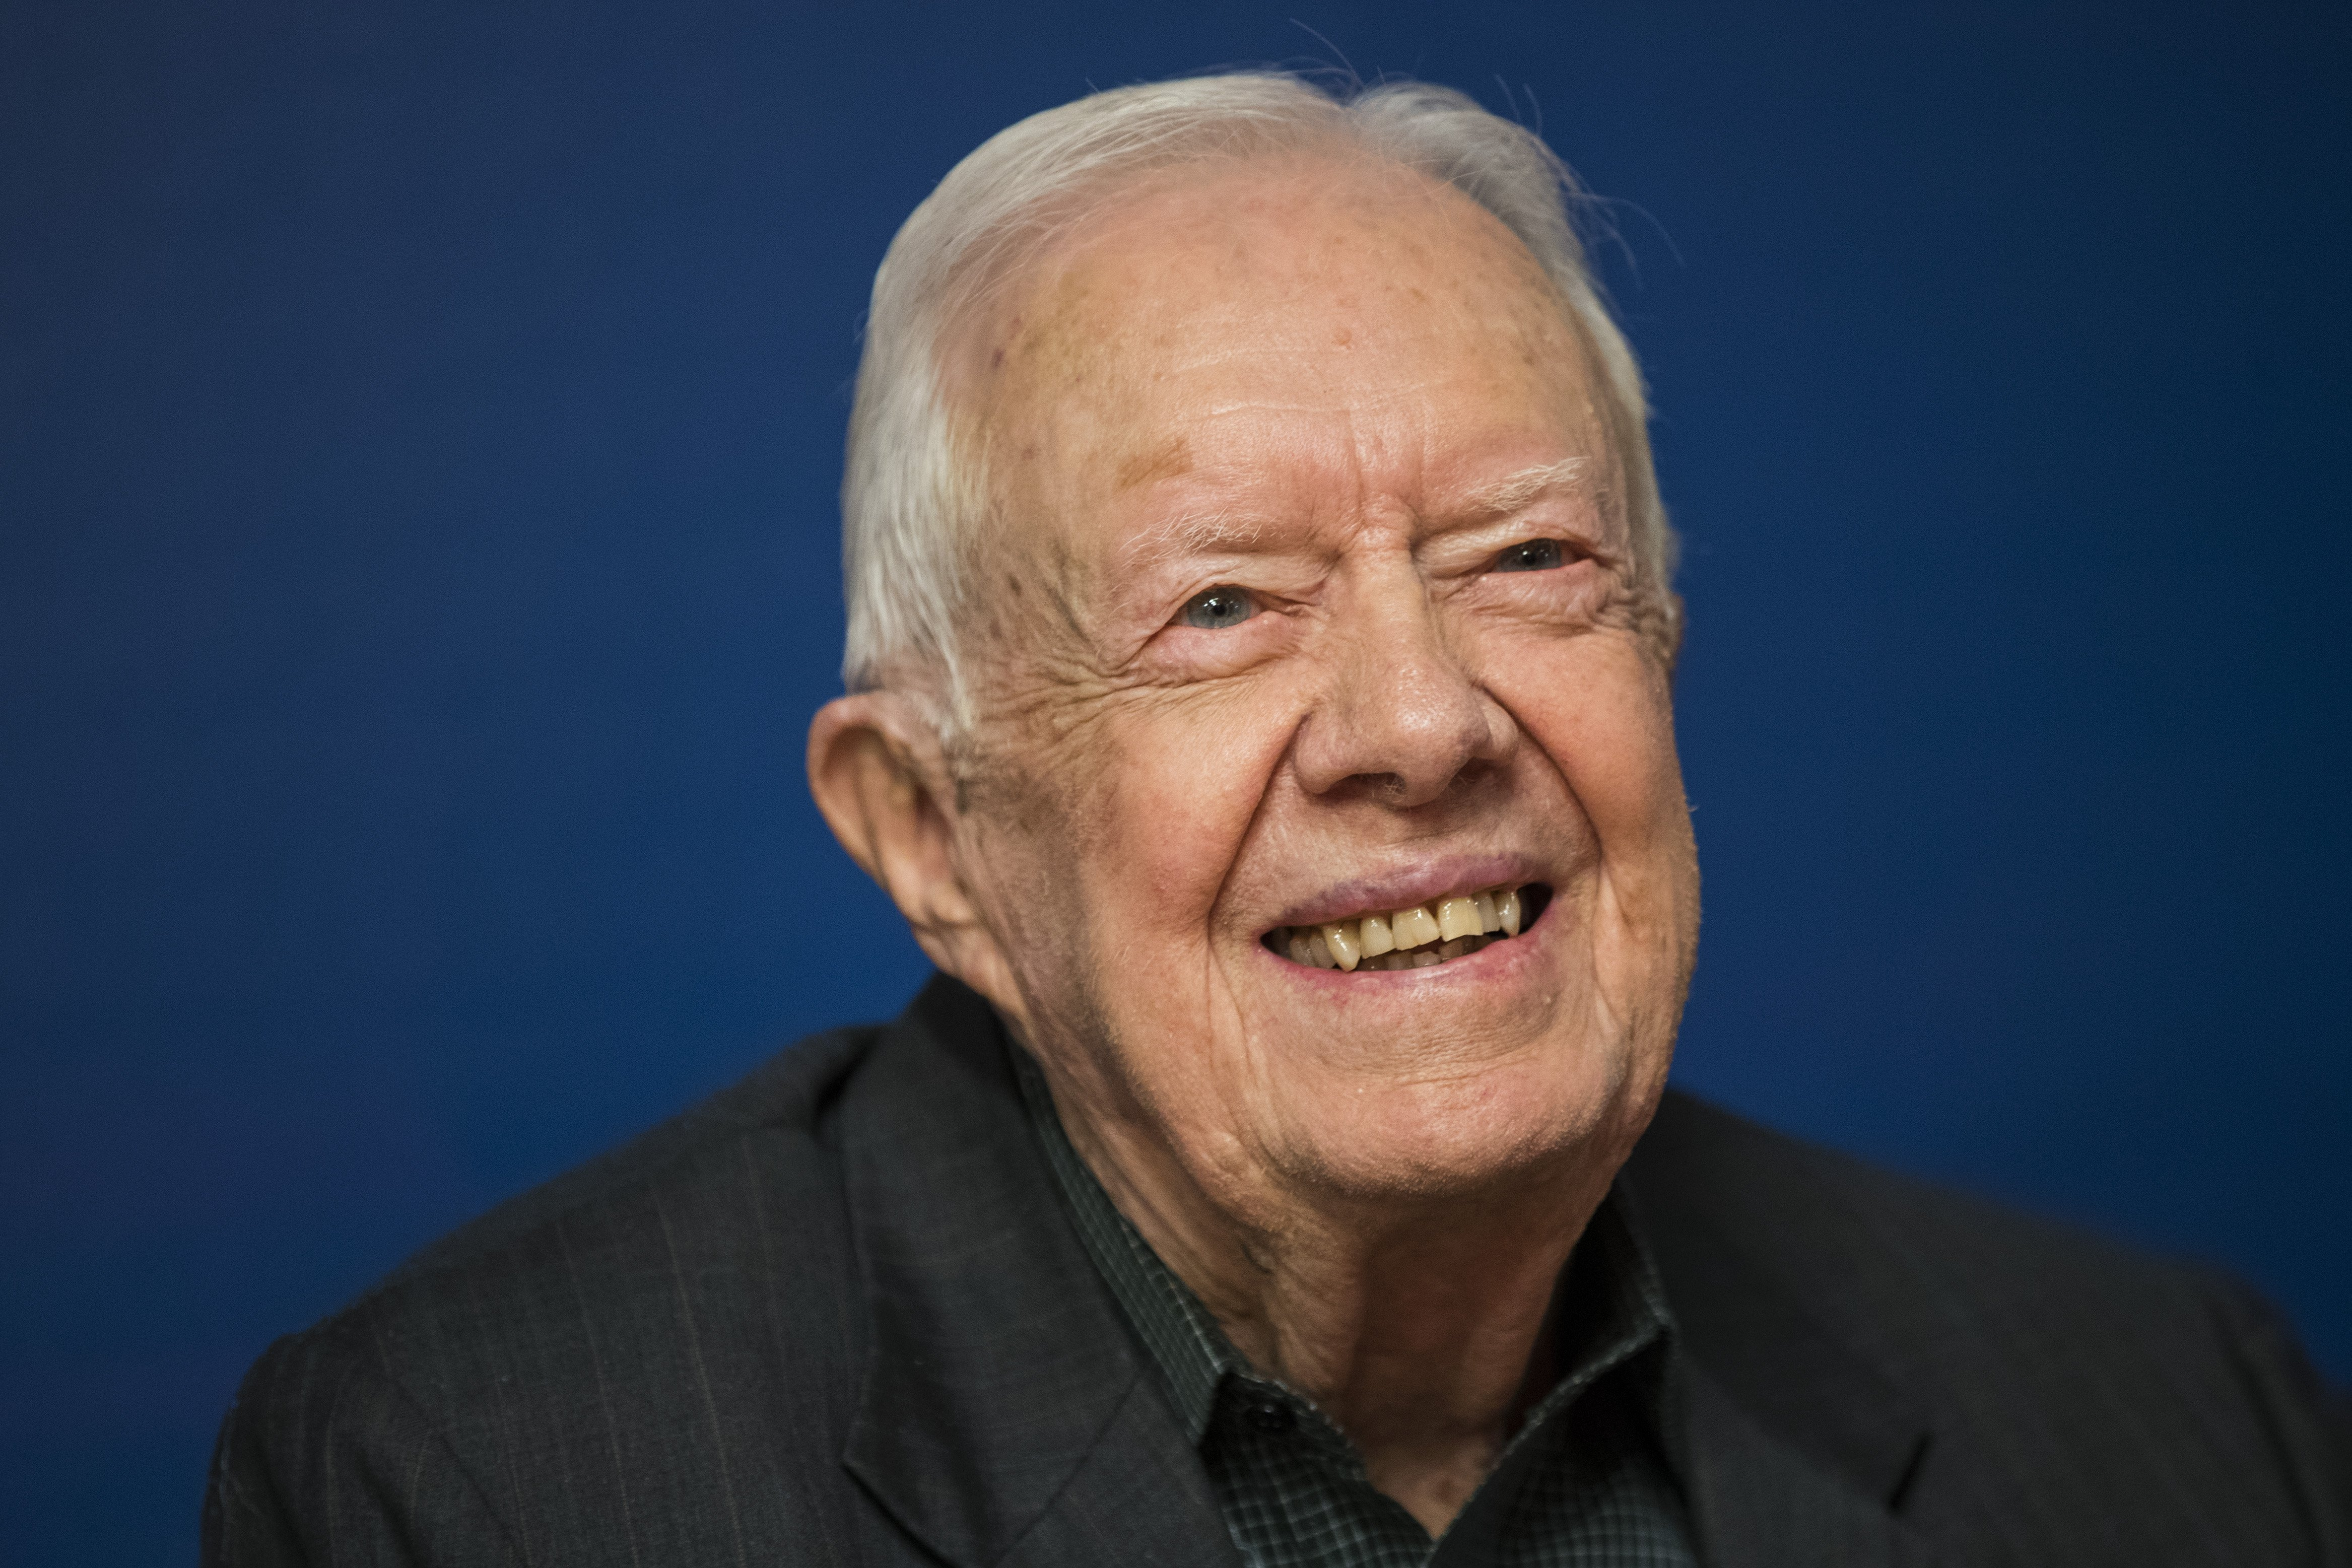 Jimmy Carter back in the hospital but already feeling better